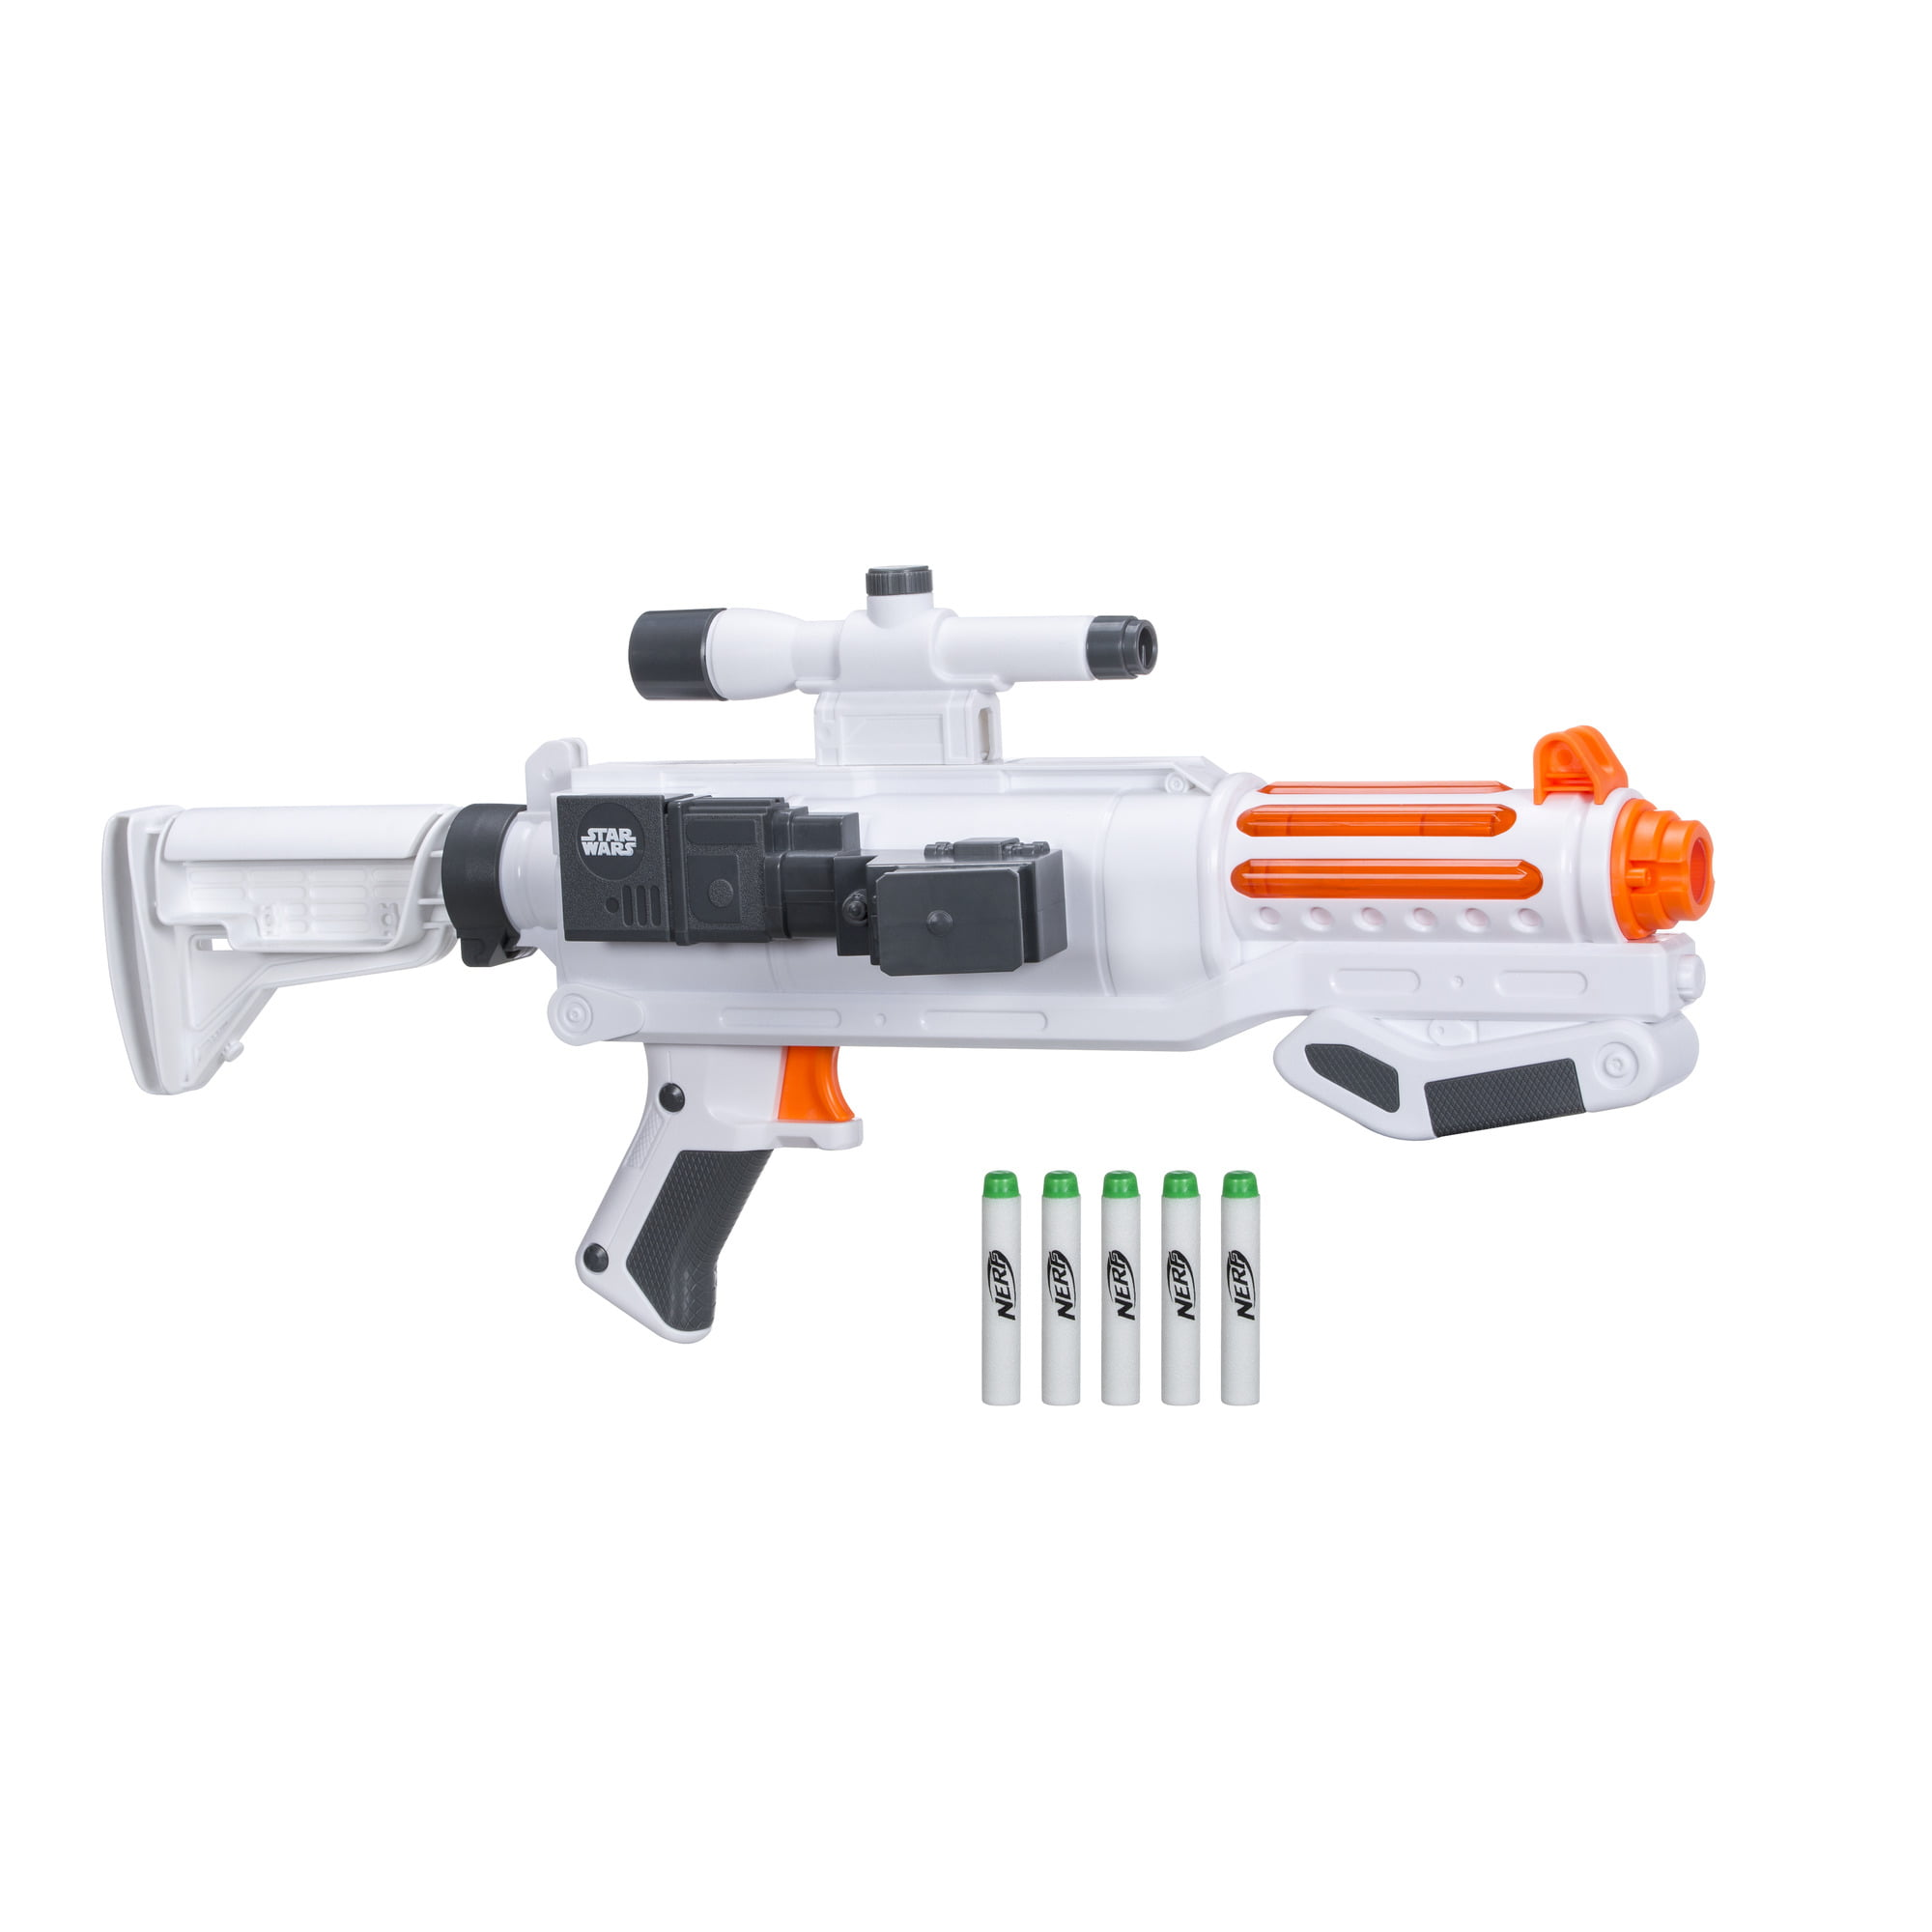 Star Wars Nerf Captain Phasma Blaster by Hasbro